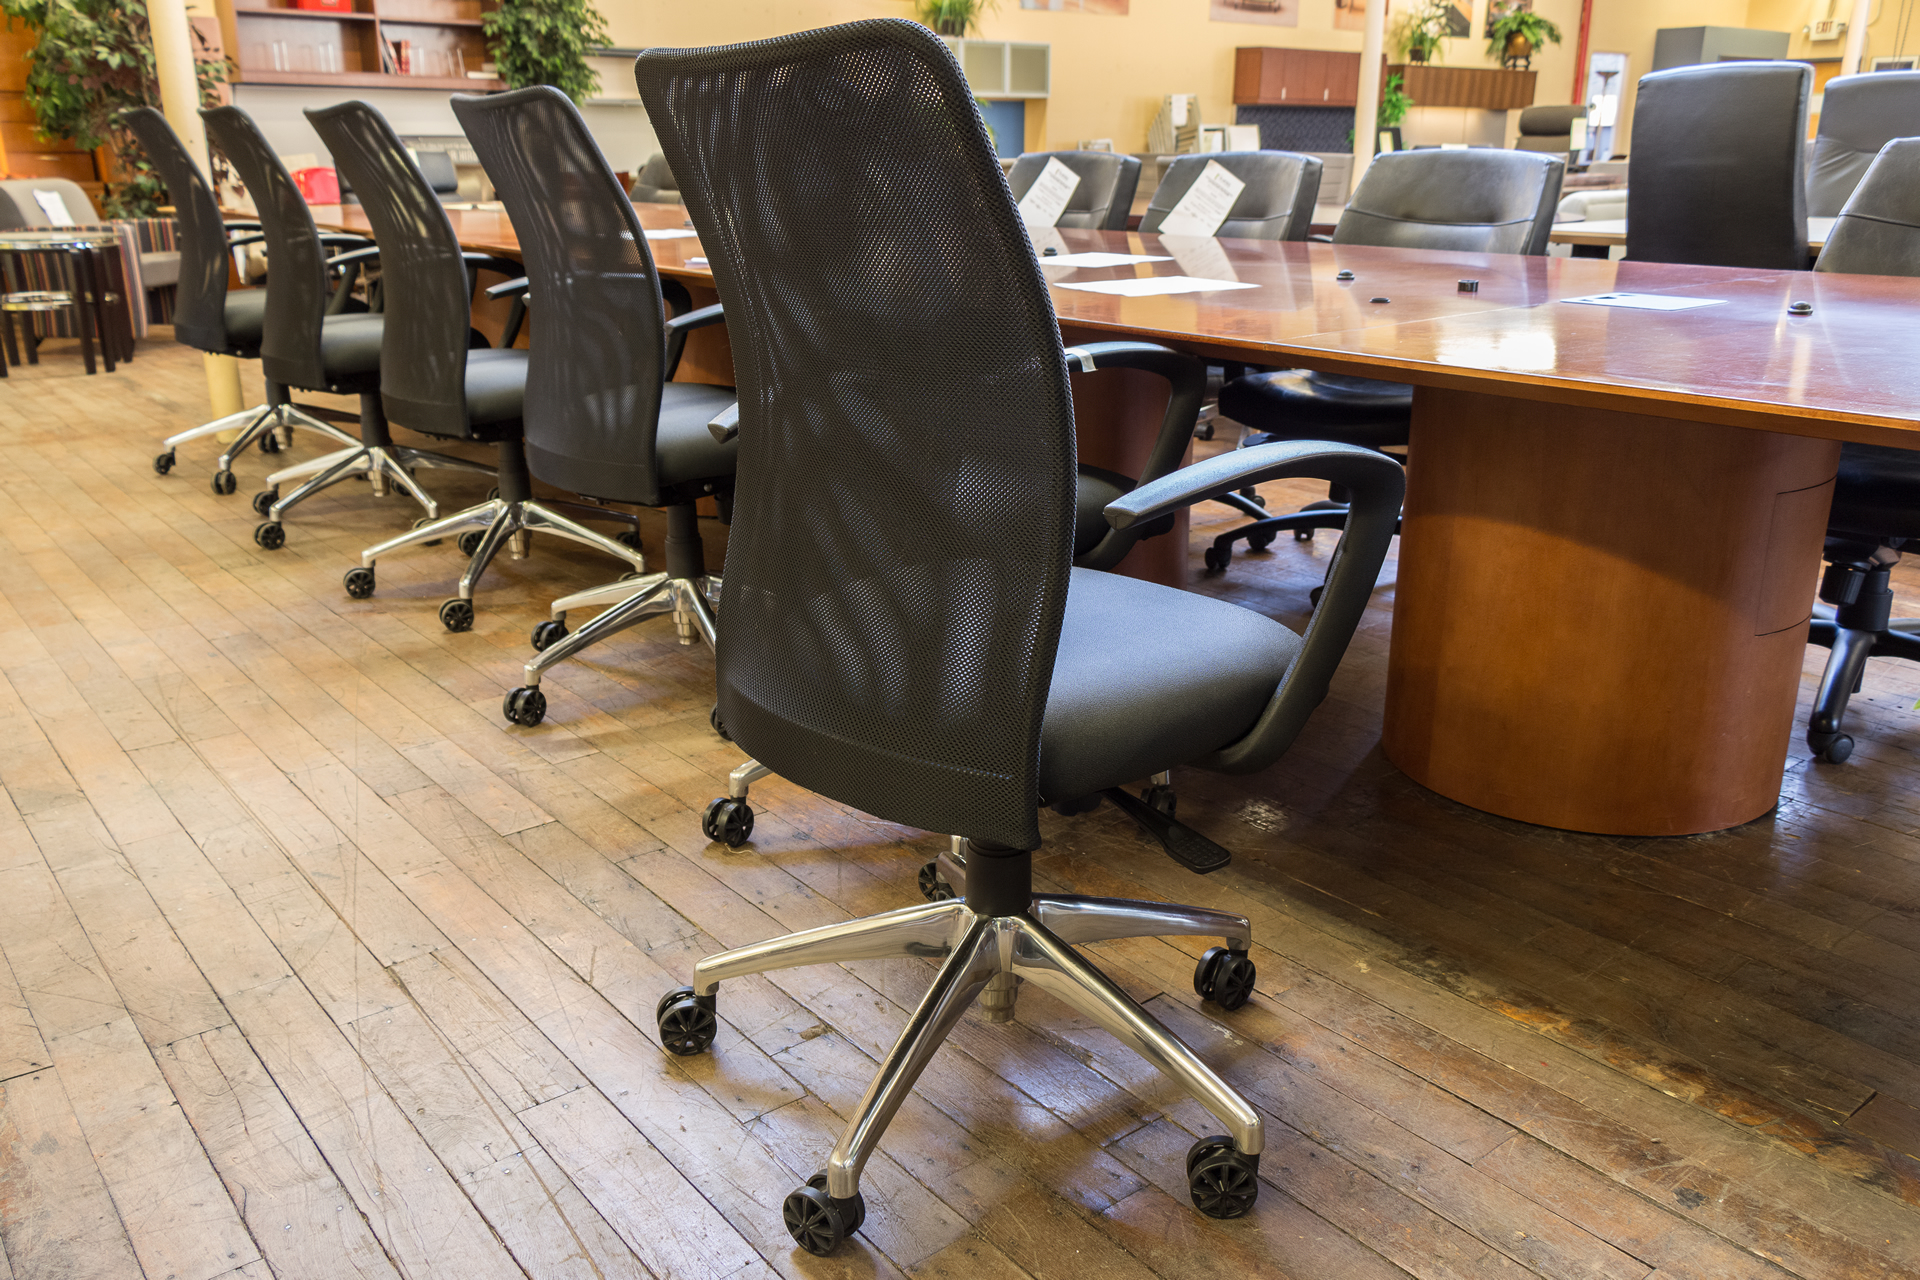 peartreeofficefurniture_peartreeofficefurniture_peartreeofficefurniture_compel-argos-conference-chairs-2.jpg